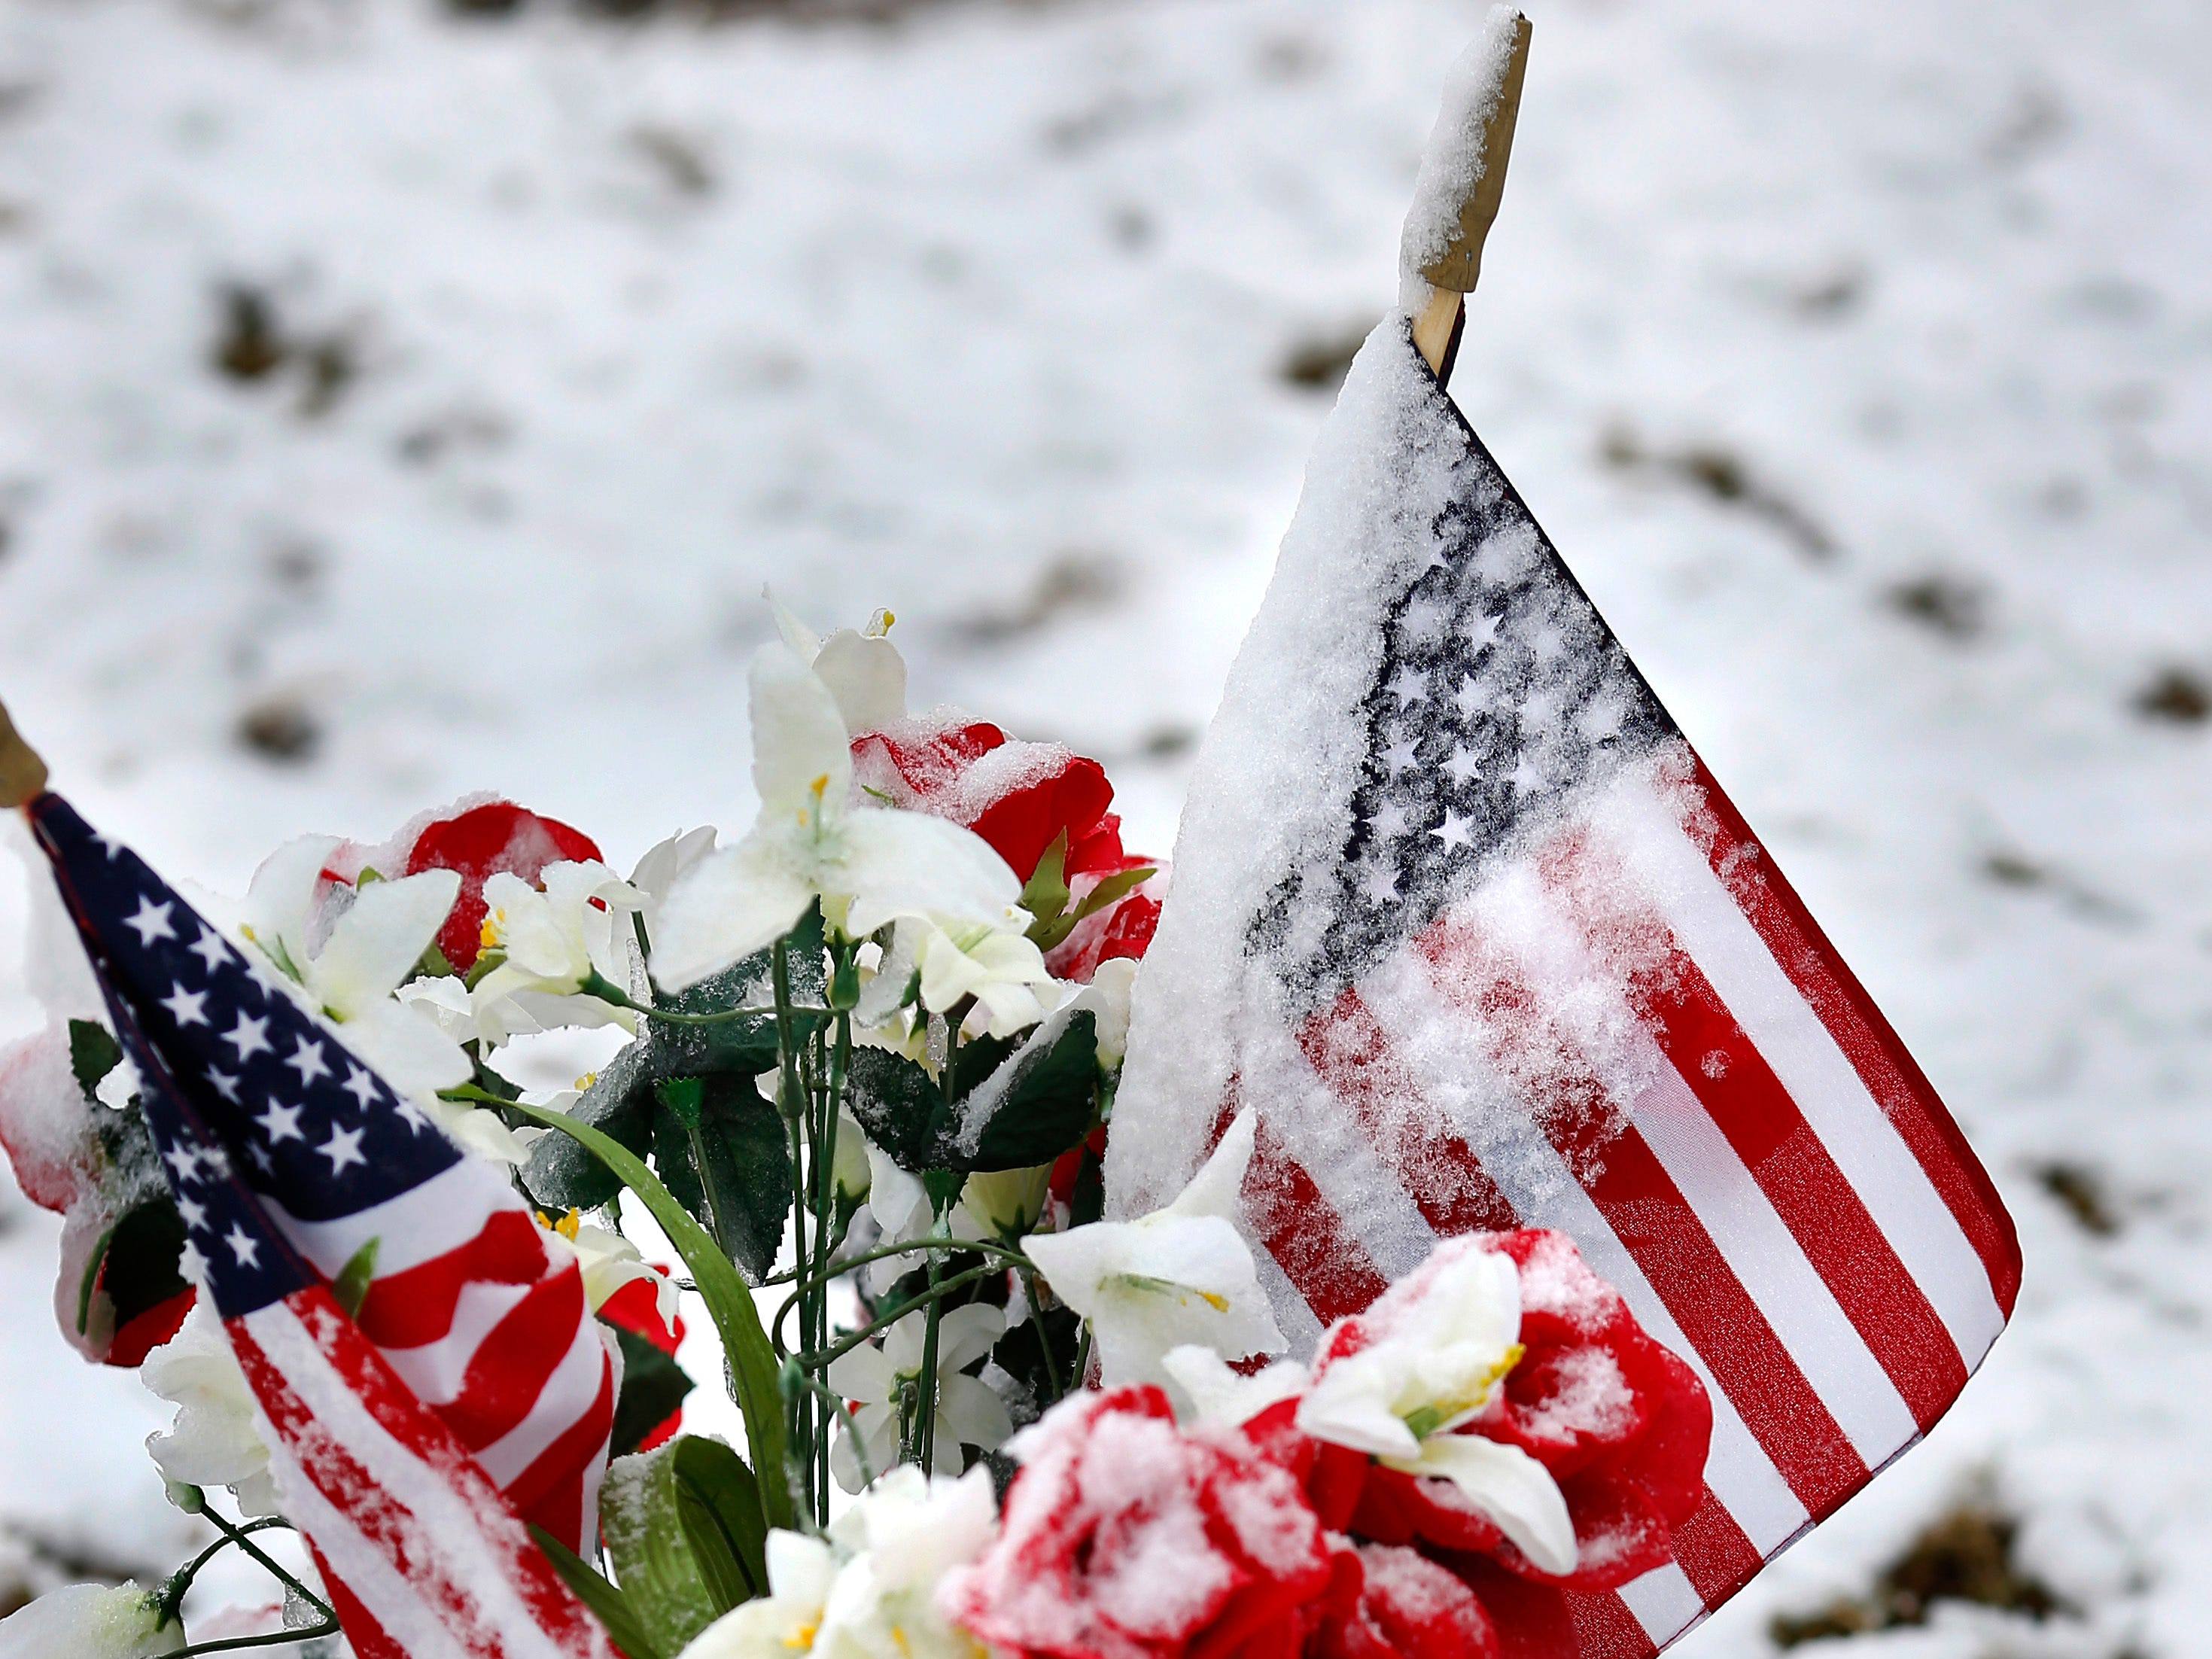 American flags, some partially obscured by snow, decorate a grave in observance of Veterans Day at Arlington Memory Gardens in Midwest City, Okla. on Nov. 12, 2018.